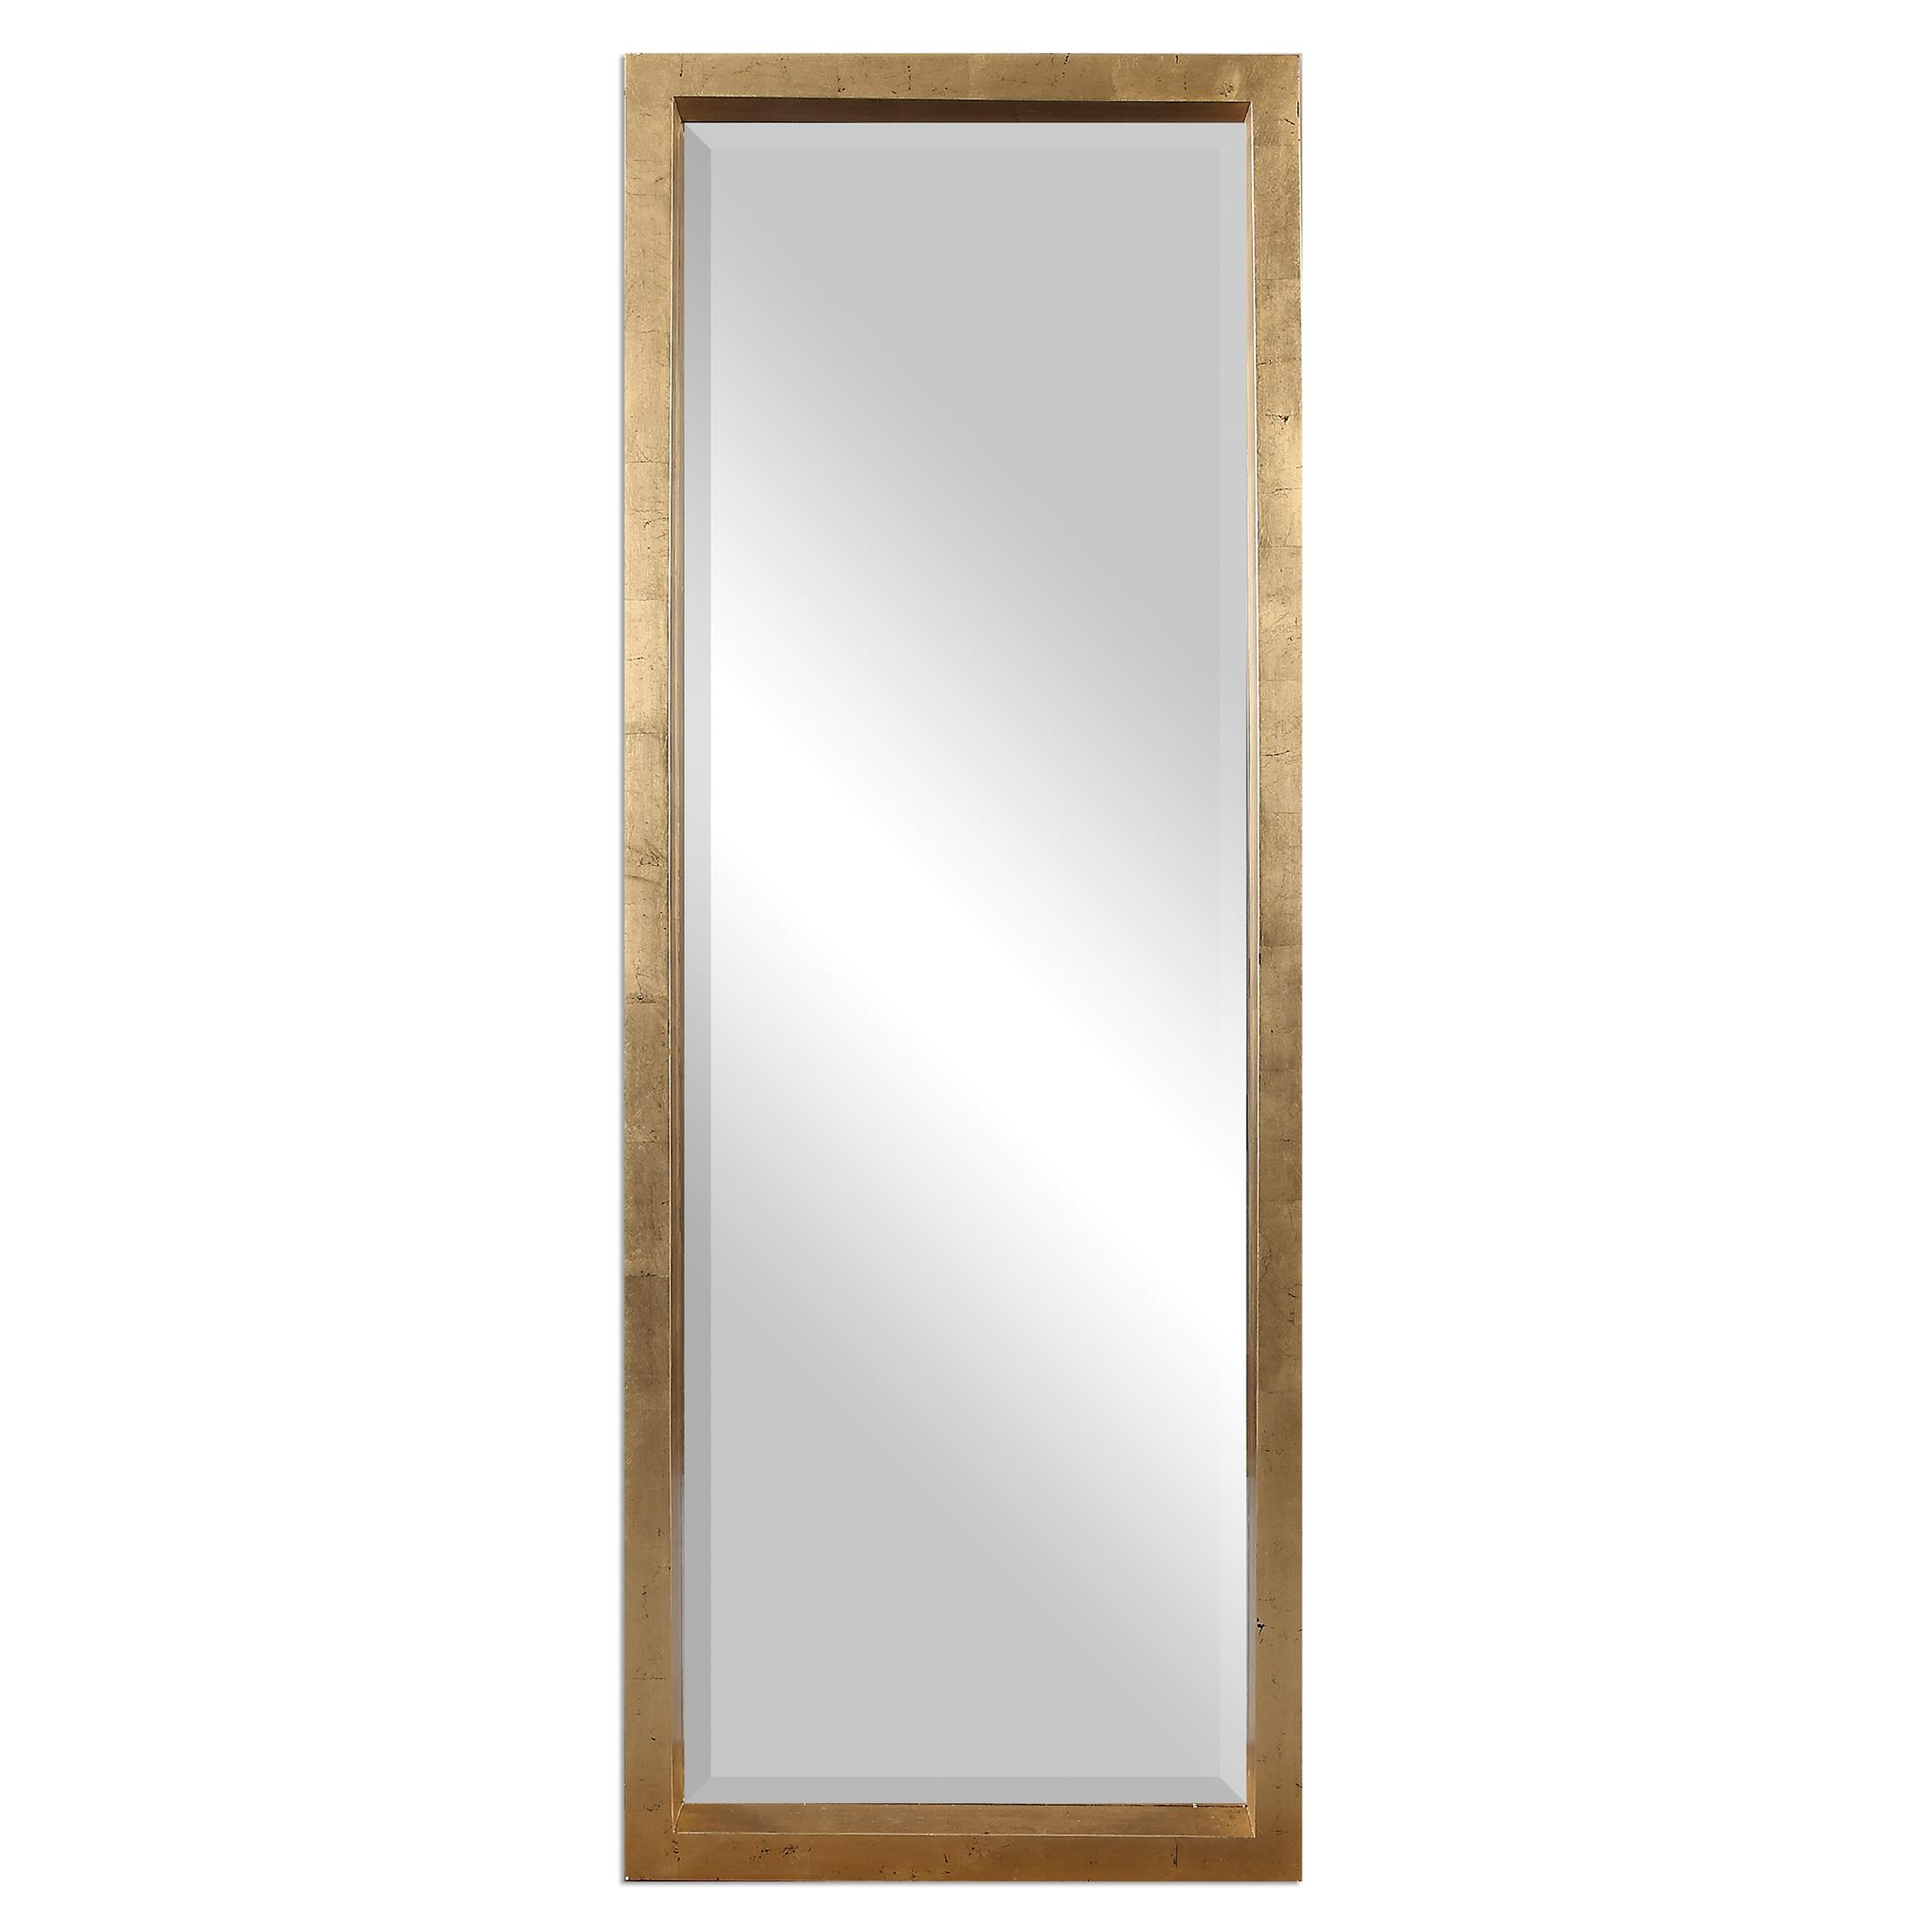 Mirrors Edmonton Gold Leaner Mirror by Uttermost at Dunk & Bright Furniture